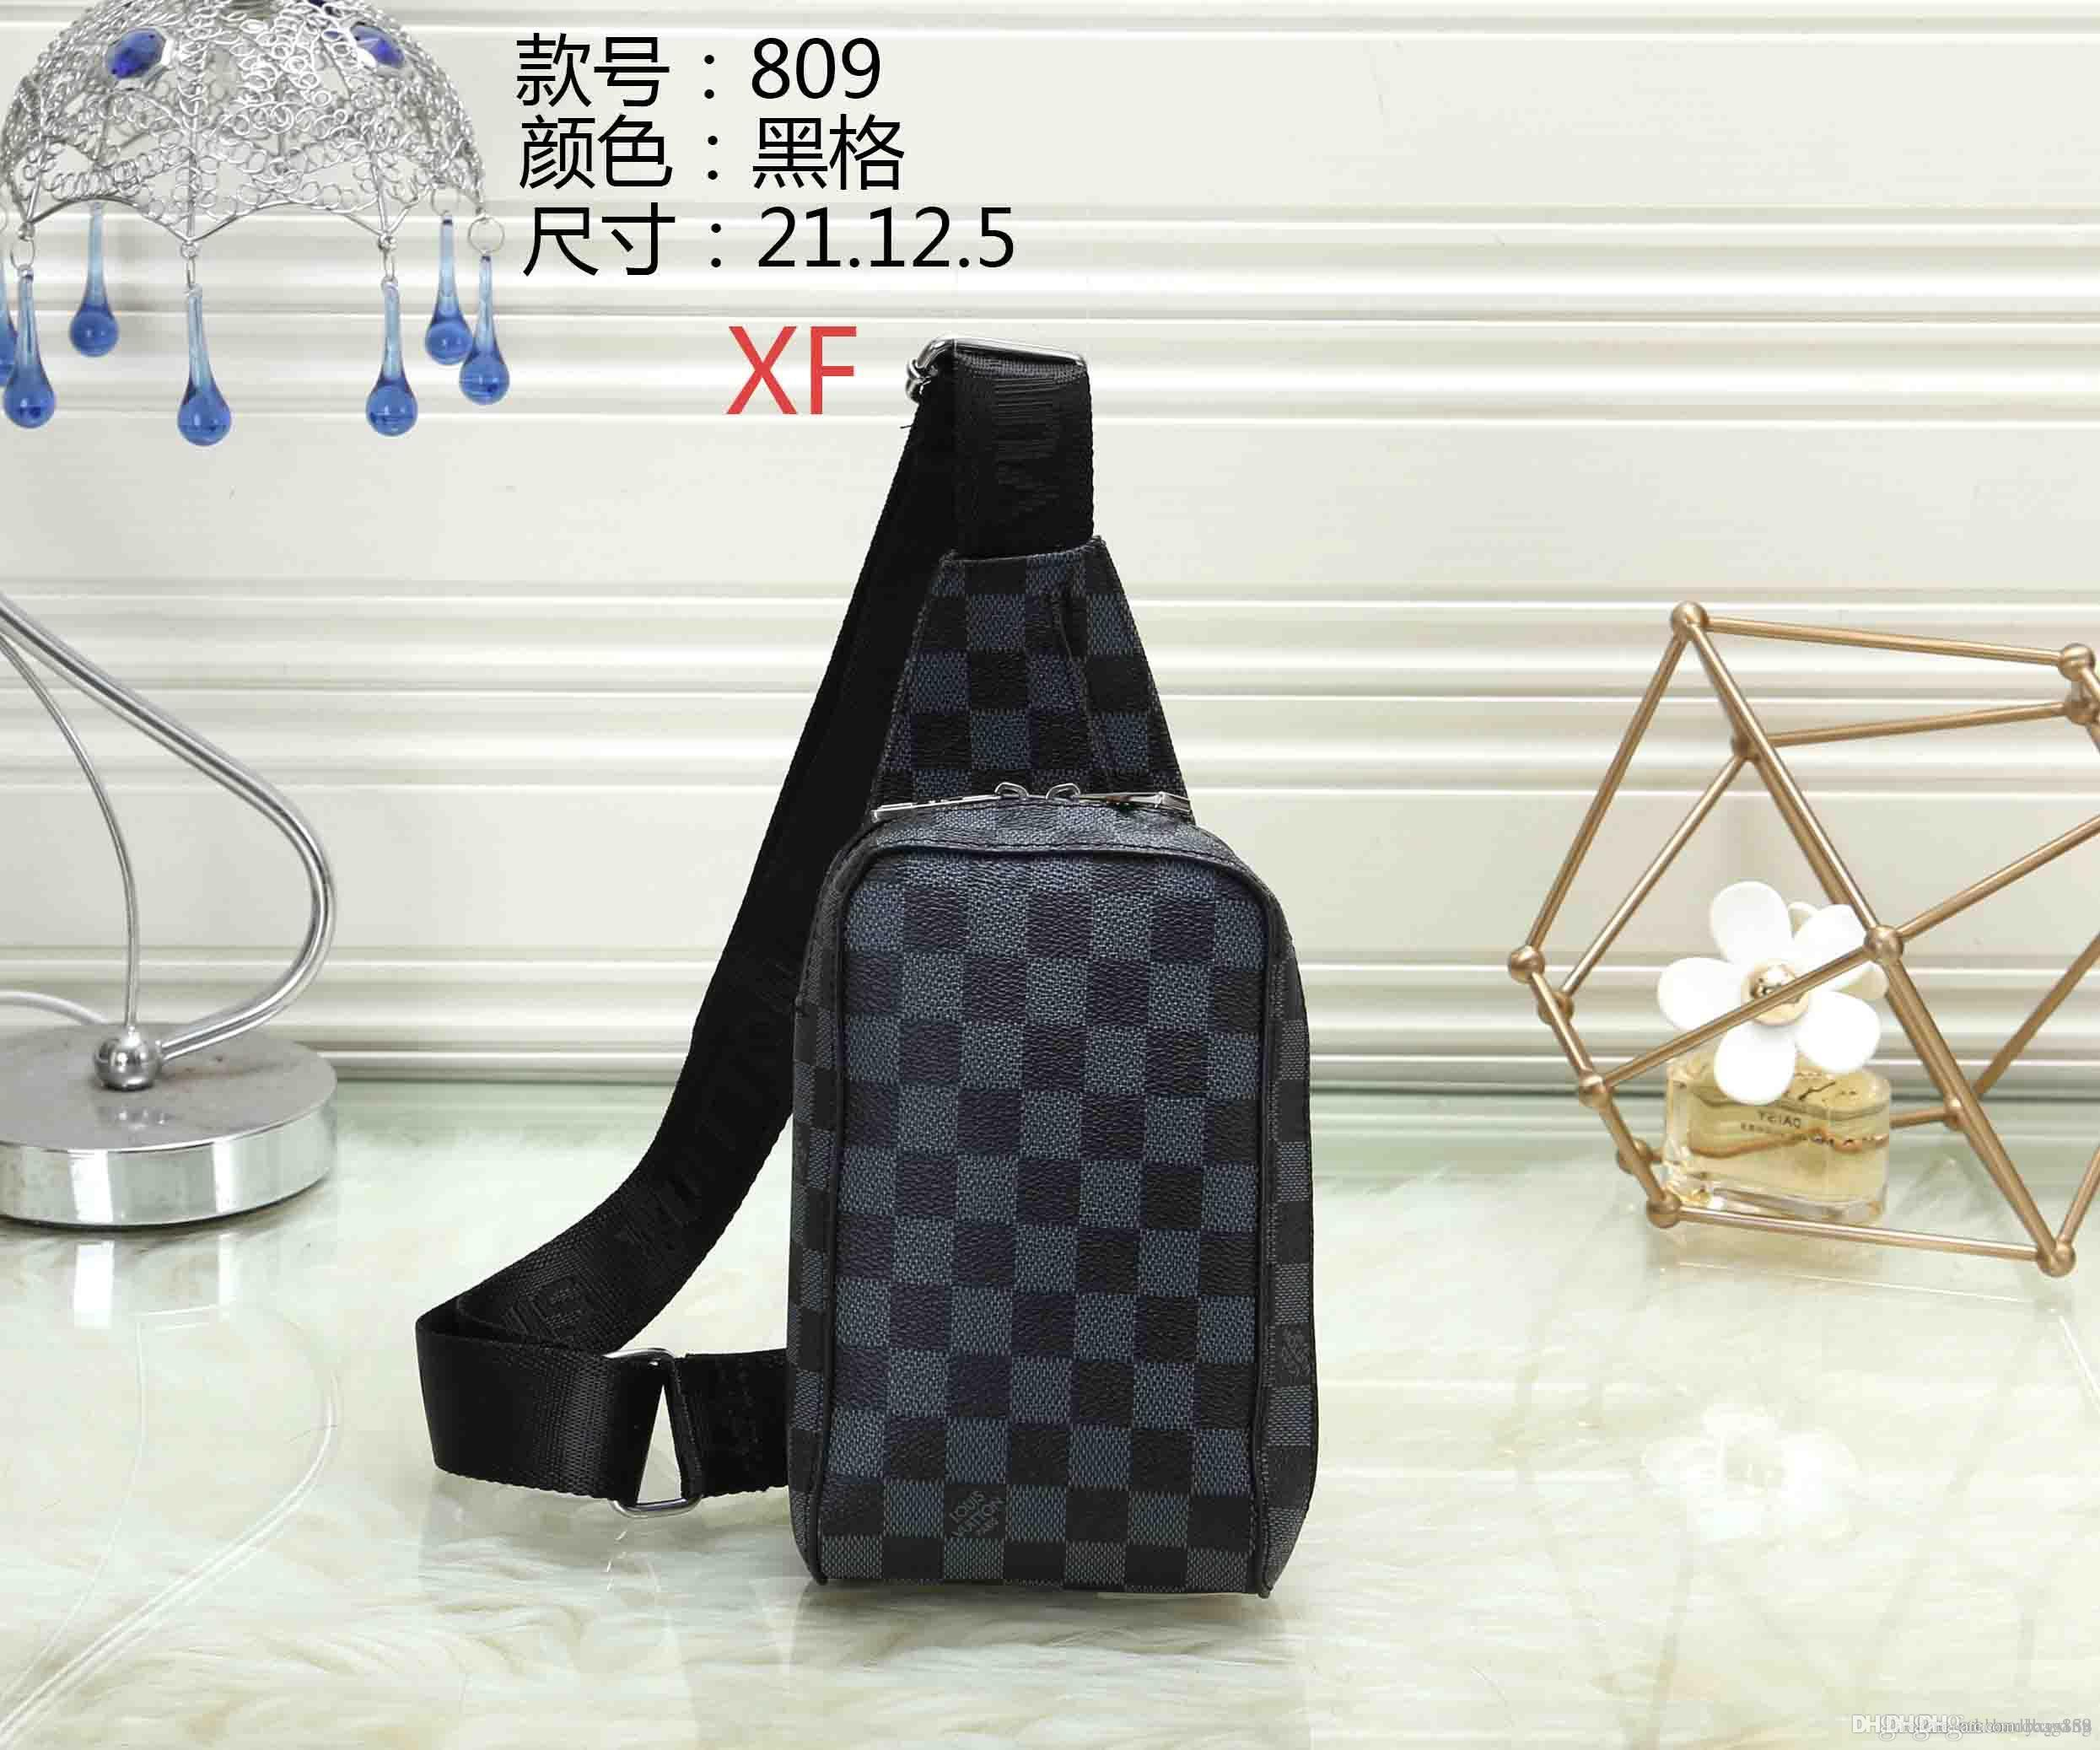 8329ff09246 MK 809 XF 2018 NEW Styles Fashion Bags Ladies Designer Bags Women Tote Bag  Luxury Brands Bags Single Shoulder Bag Online with  25.15 Piece on  Yxyxing s ...